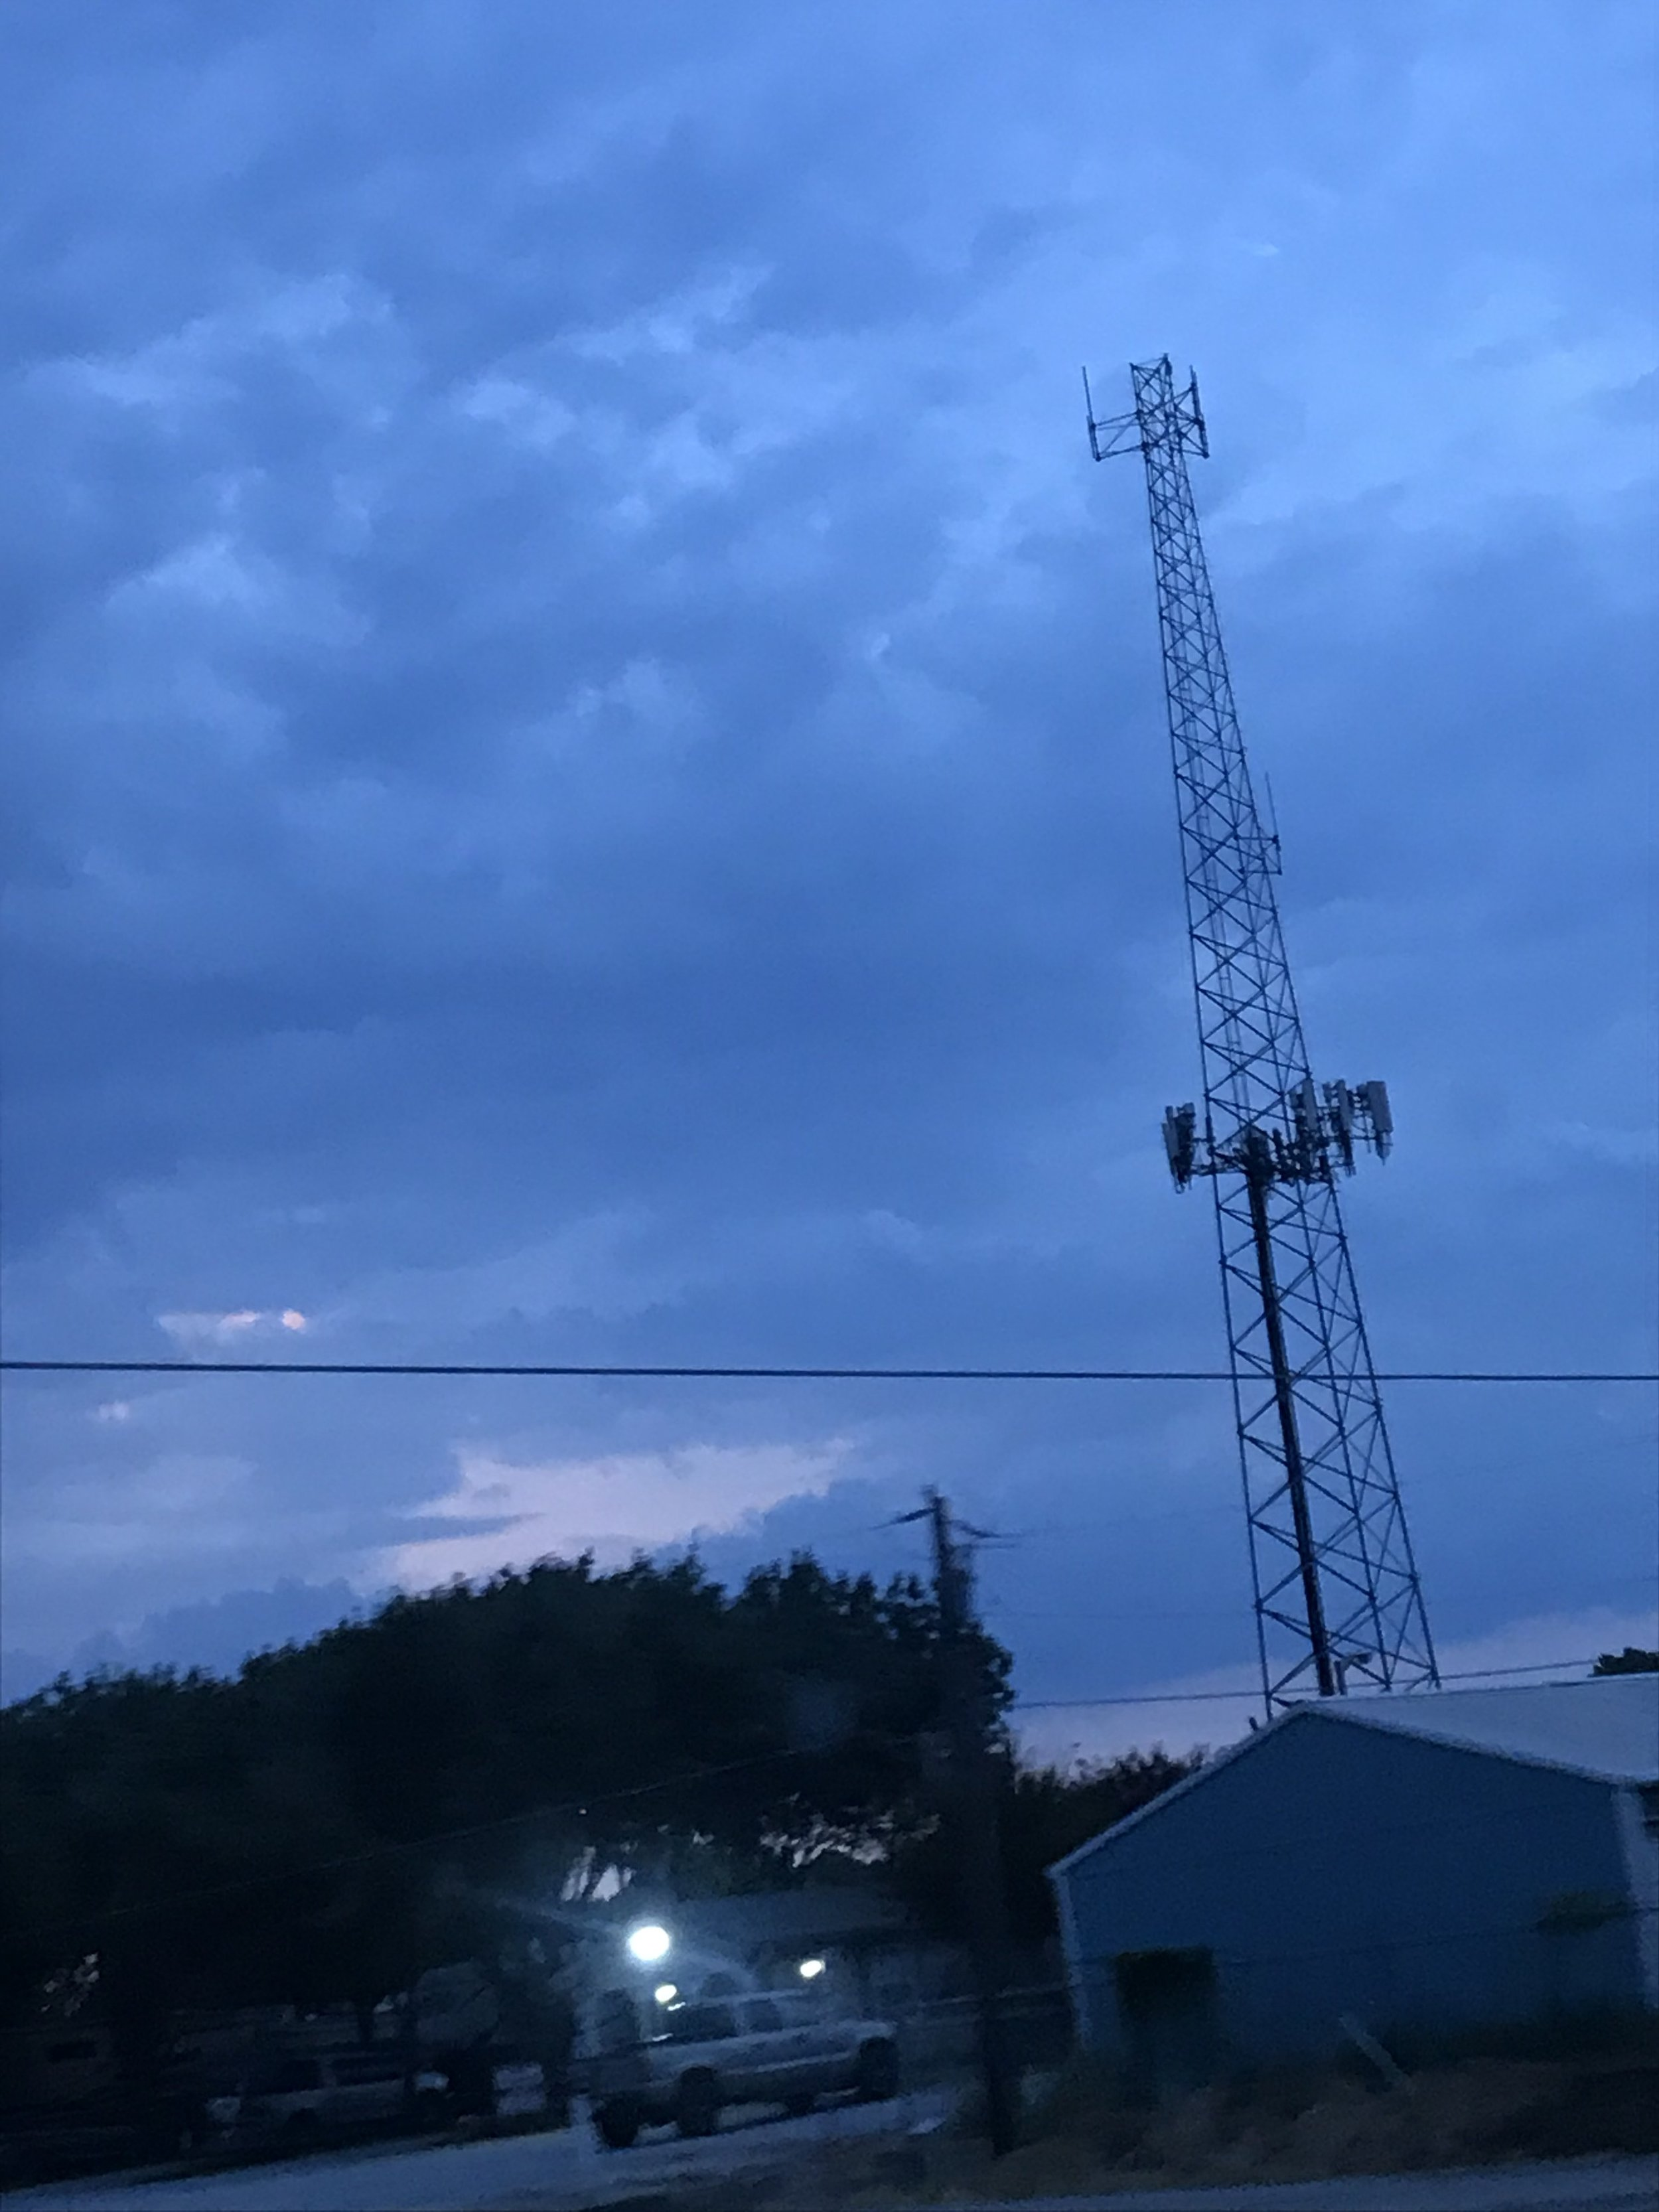 A cell-tower near where my parents live in Texas.